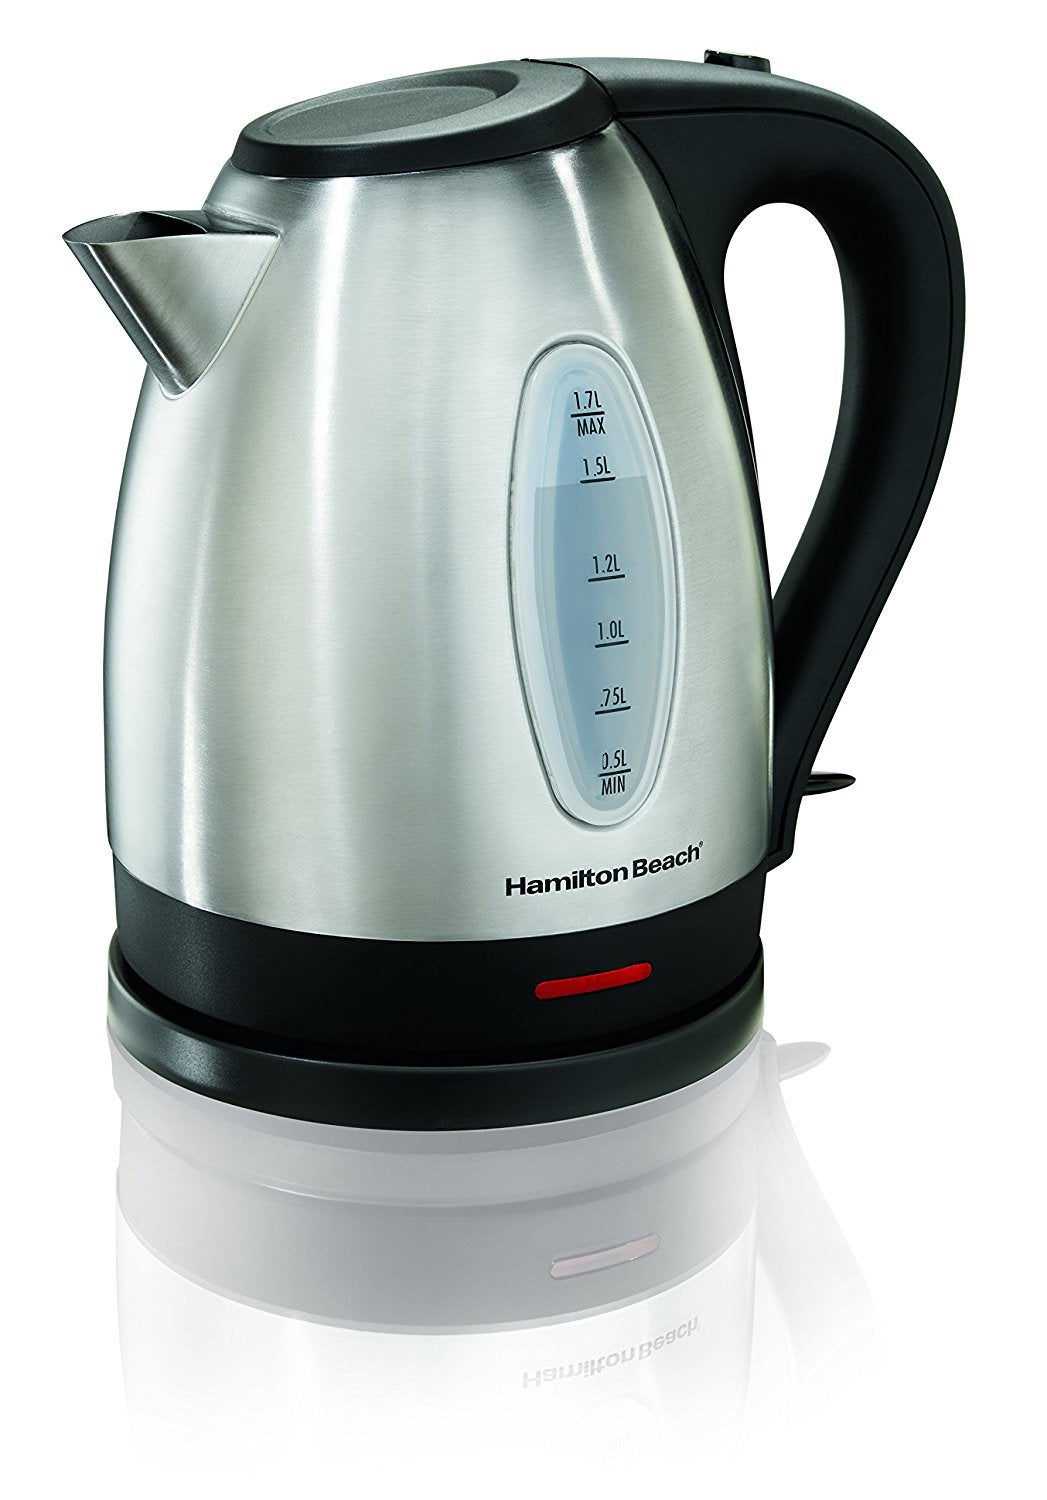 Hamilton Beach 40880 Electric Kettle, 1.7 L